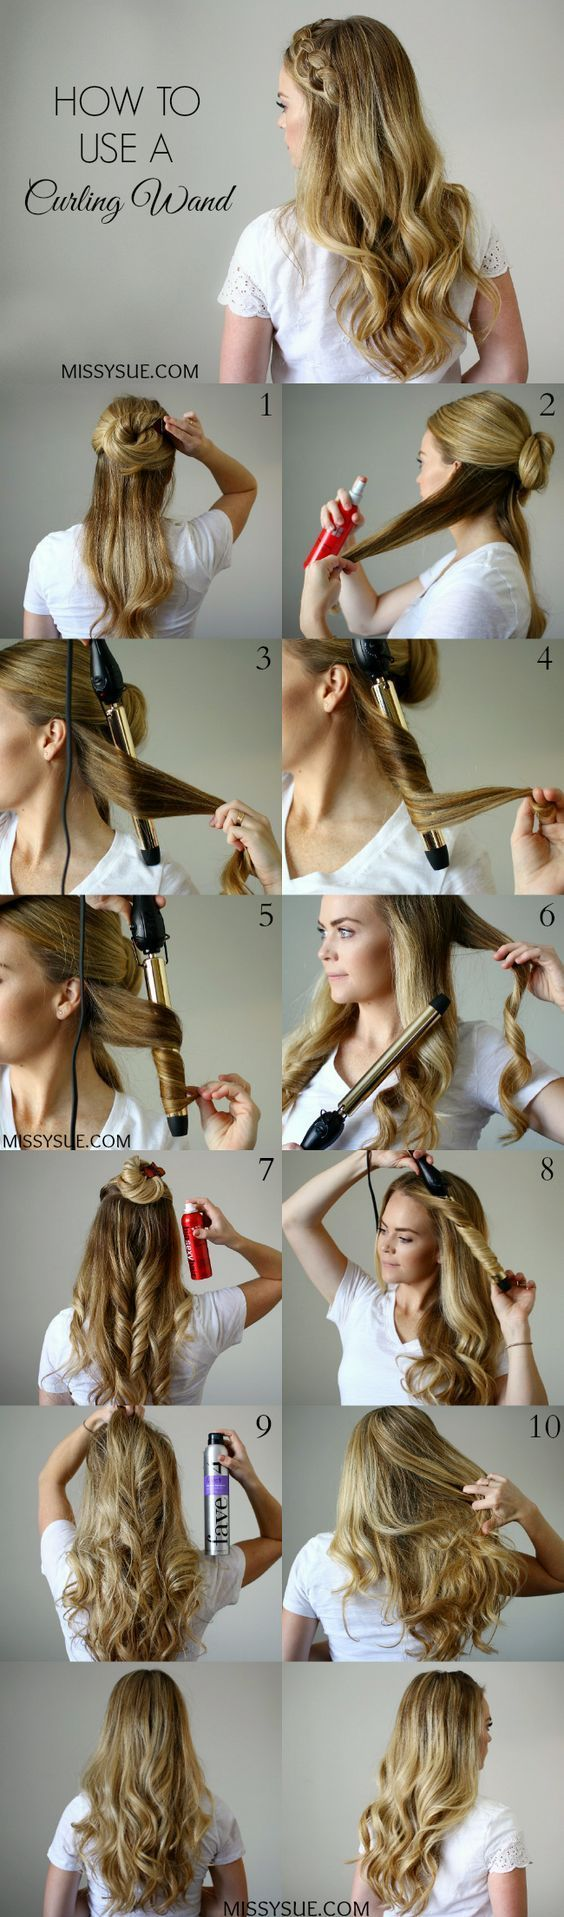 how-to-use-a-curling-wand-tutorial https://www.amazon.com/dp/B071Y6MGSQ